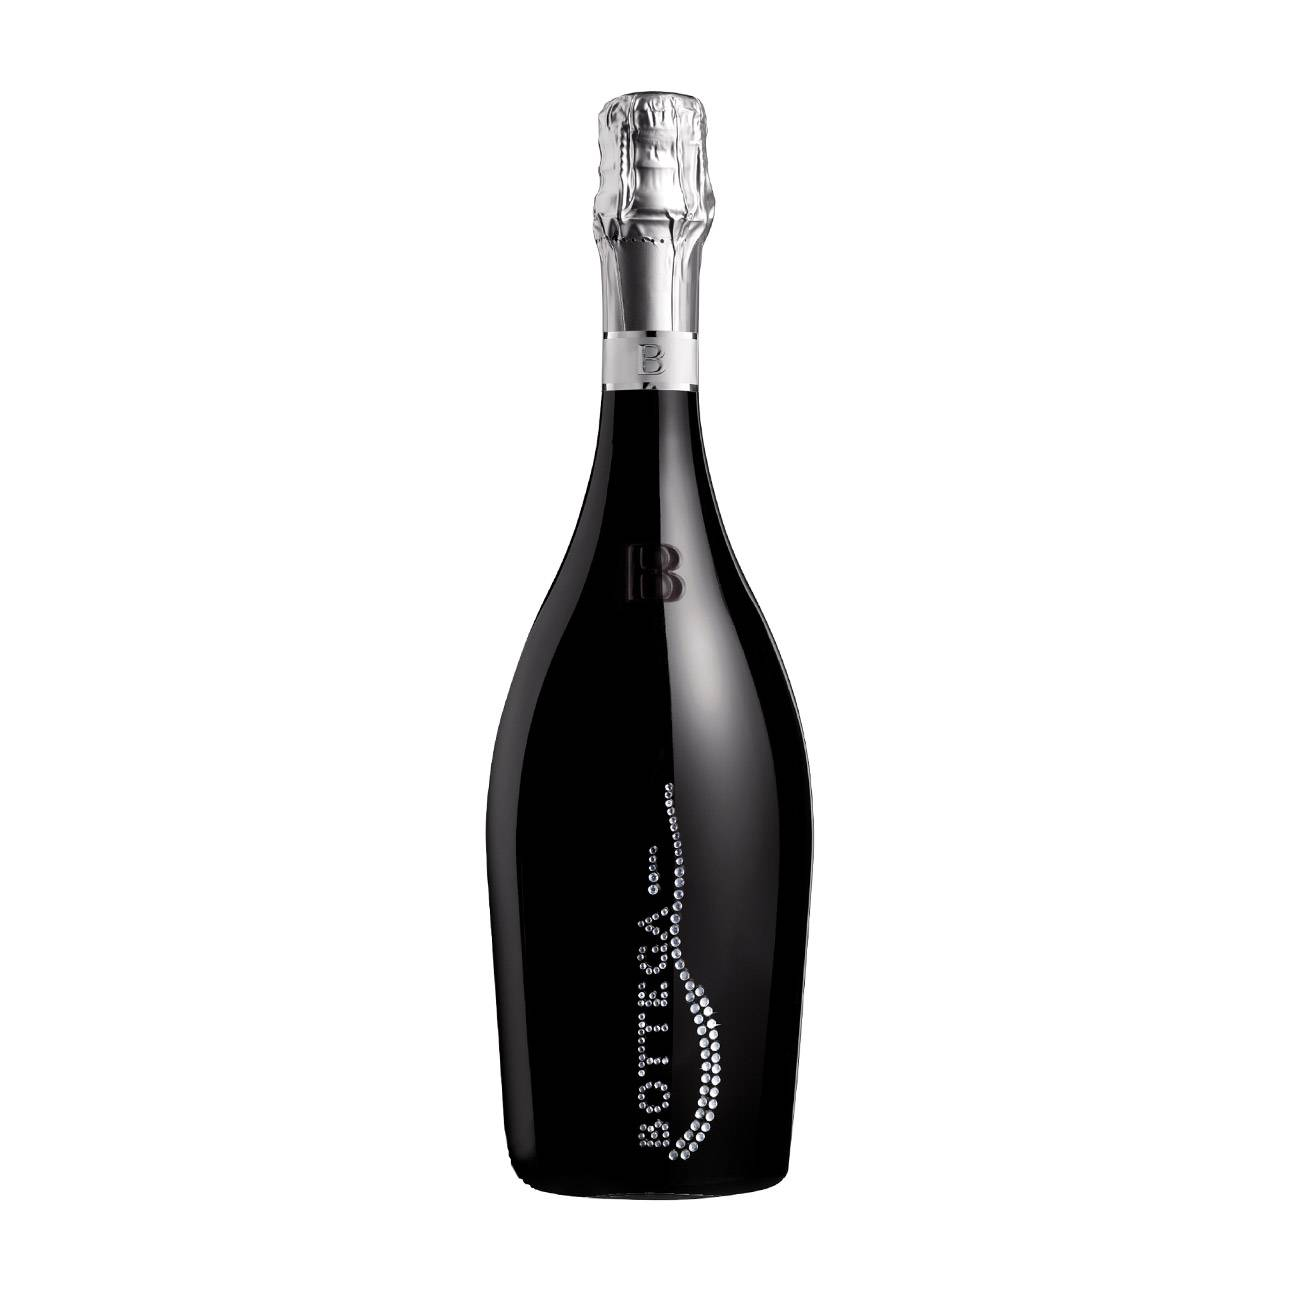 Vinuri spumante, DIAMOND 750ml, Alexander